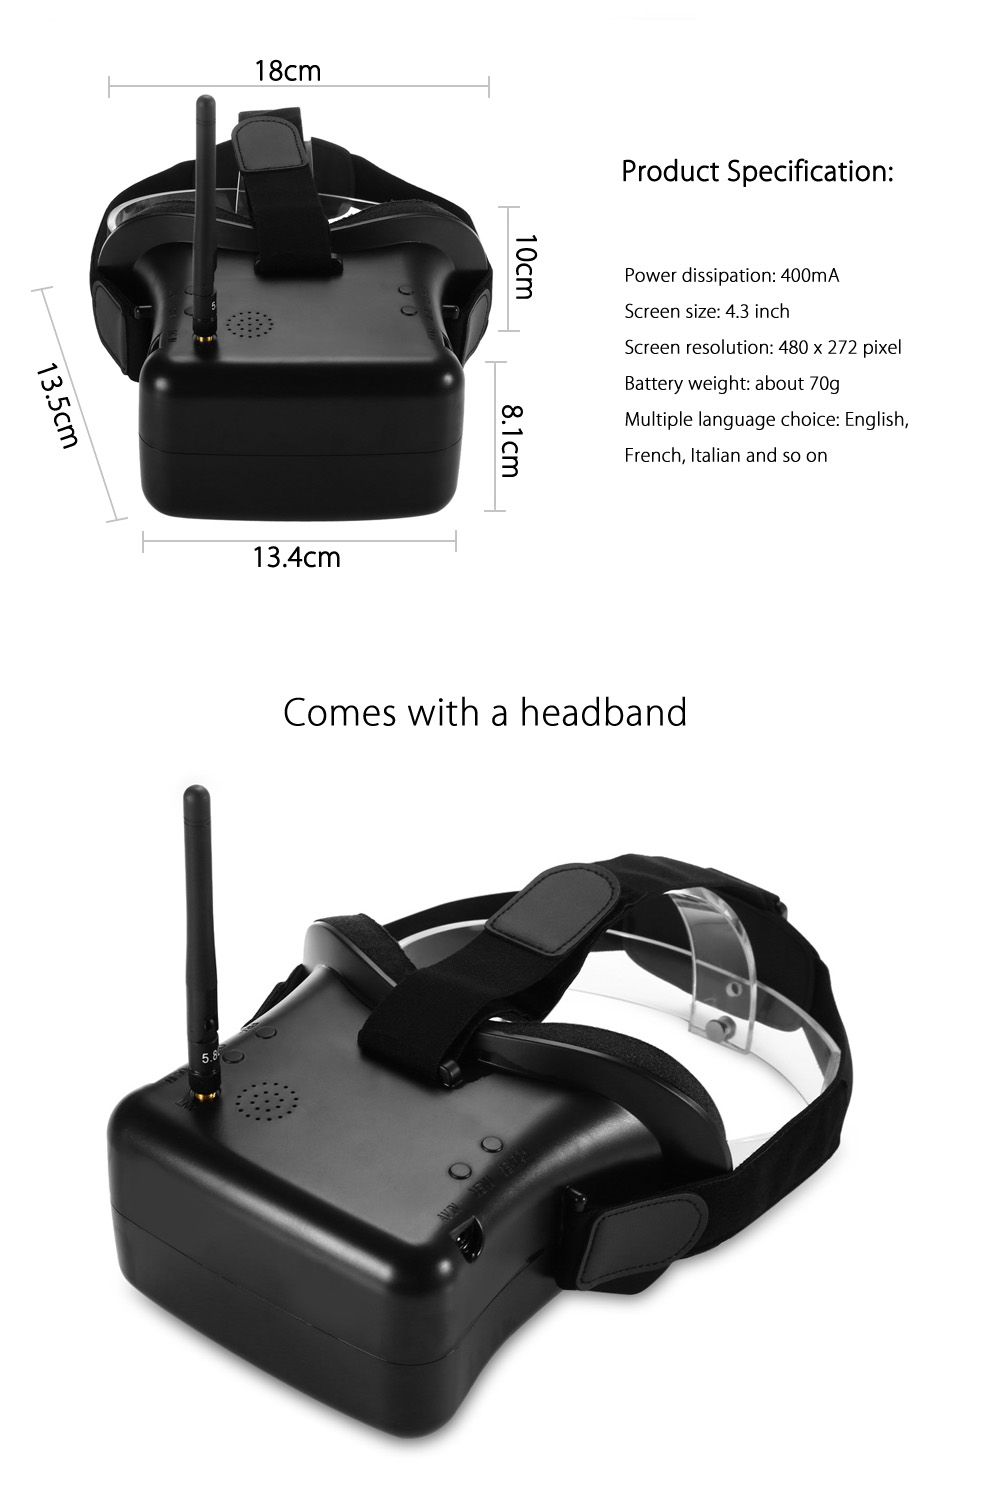 RC - 007 40CH 5.8G Wireless Video Goggles 480 x 272 FPV Headset Glasses with 4.3 inch Monitor